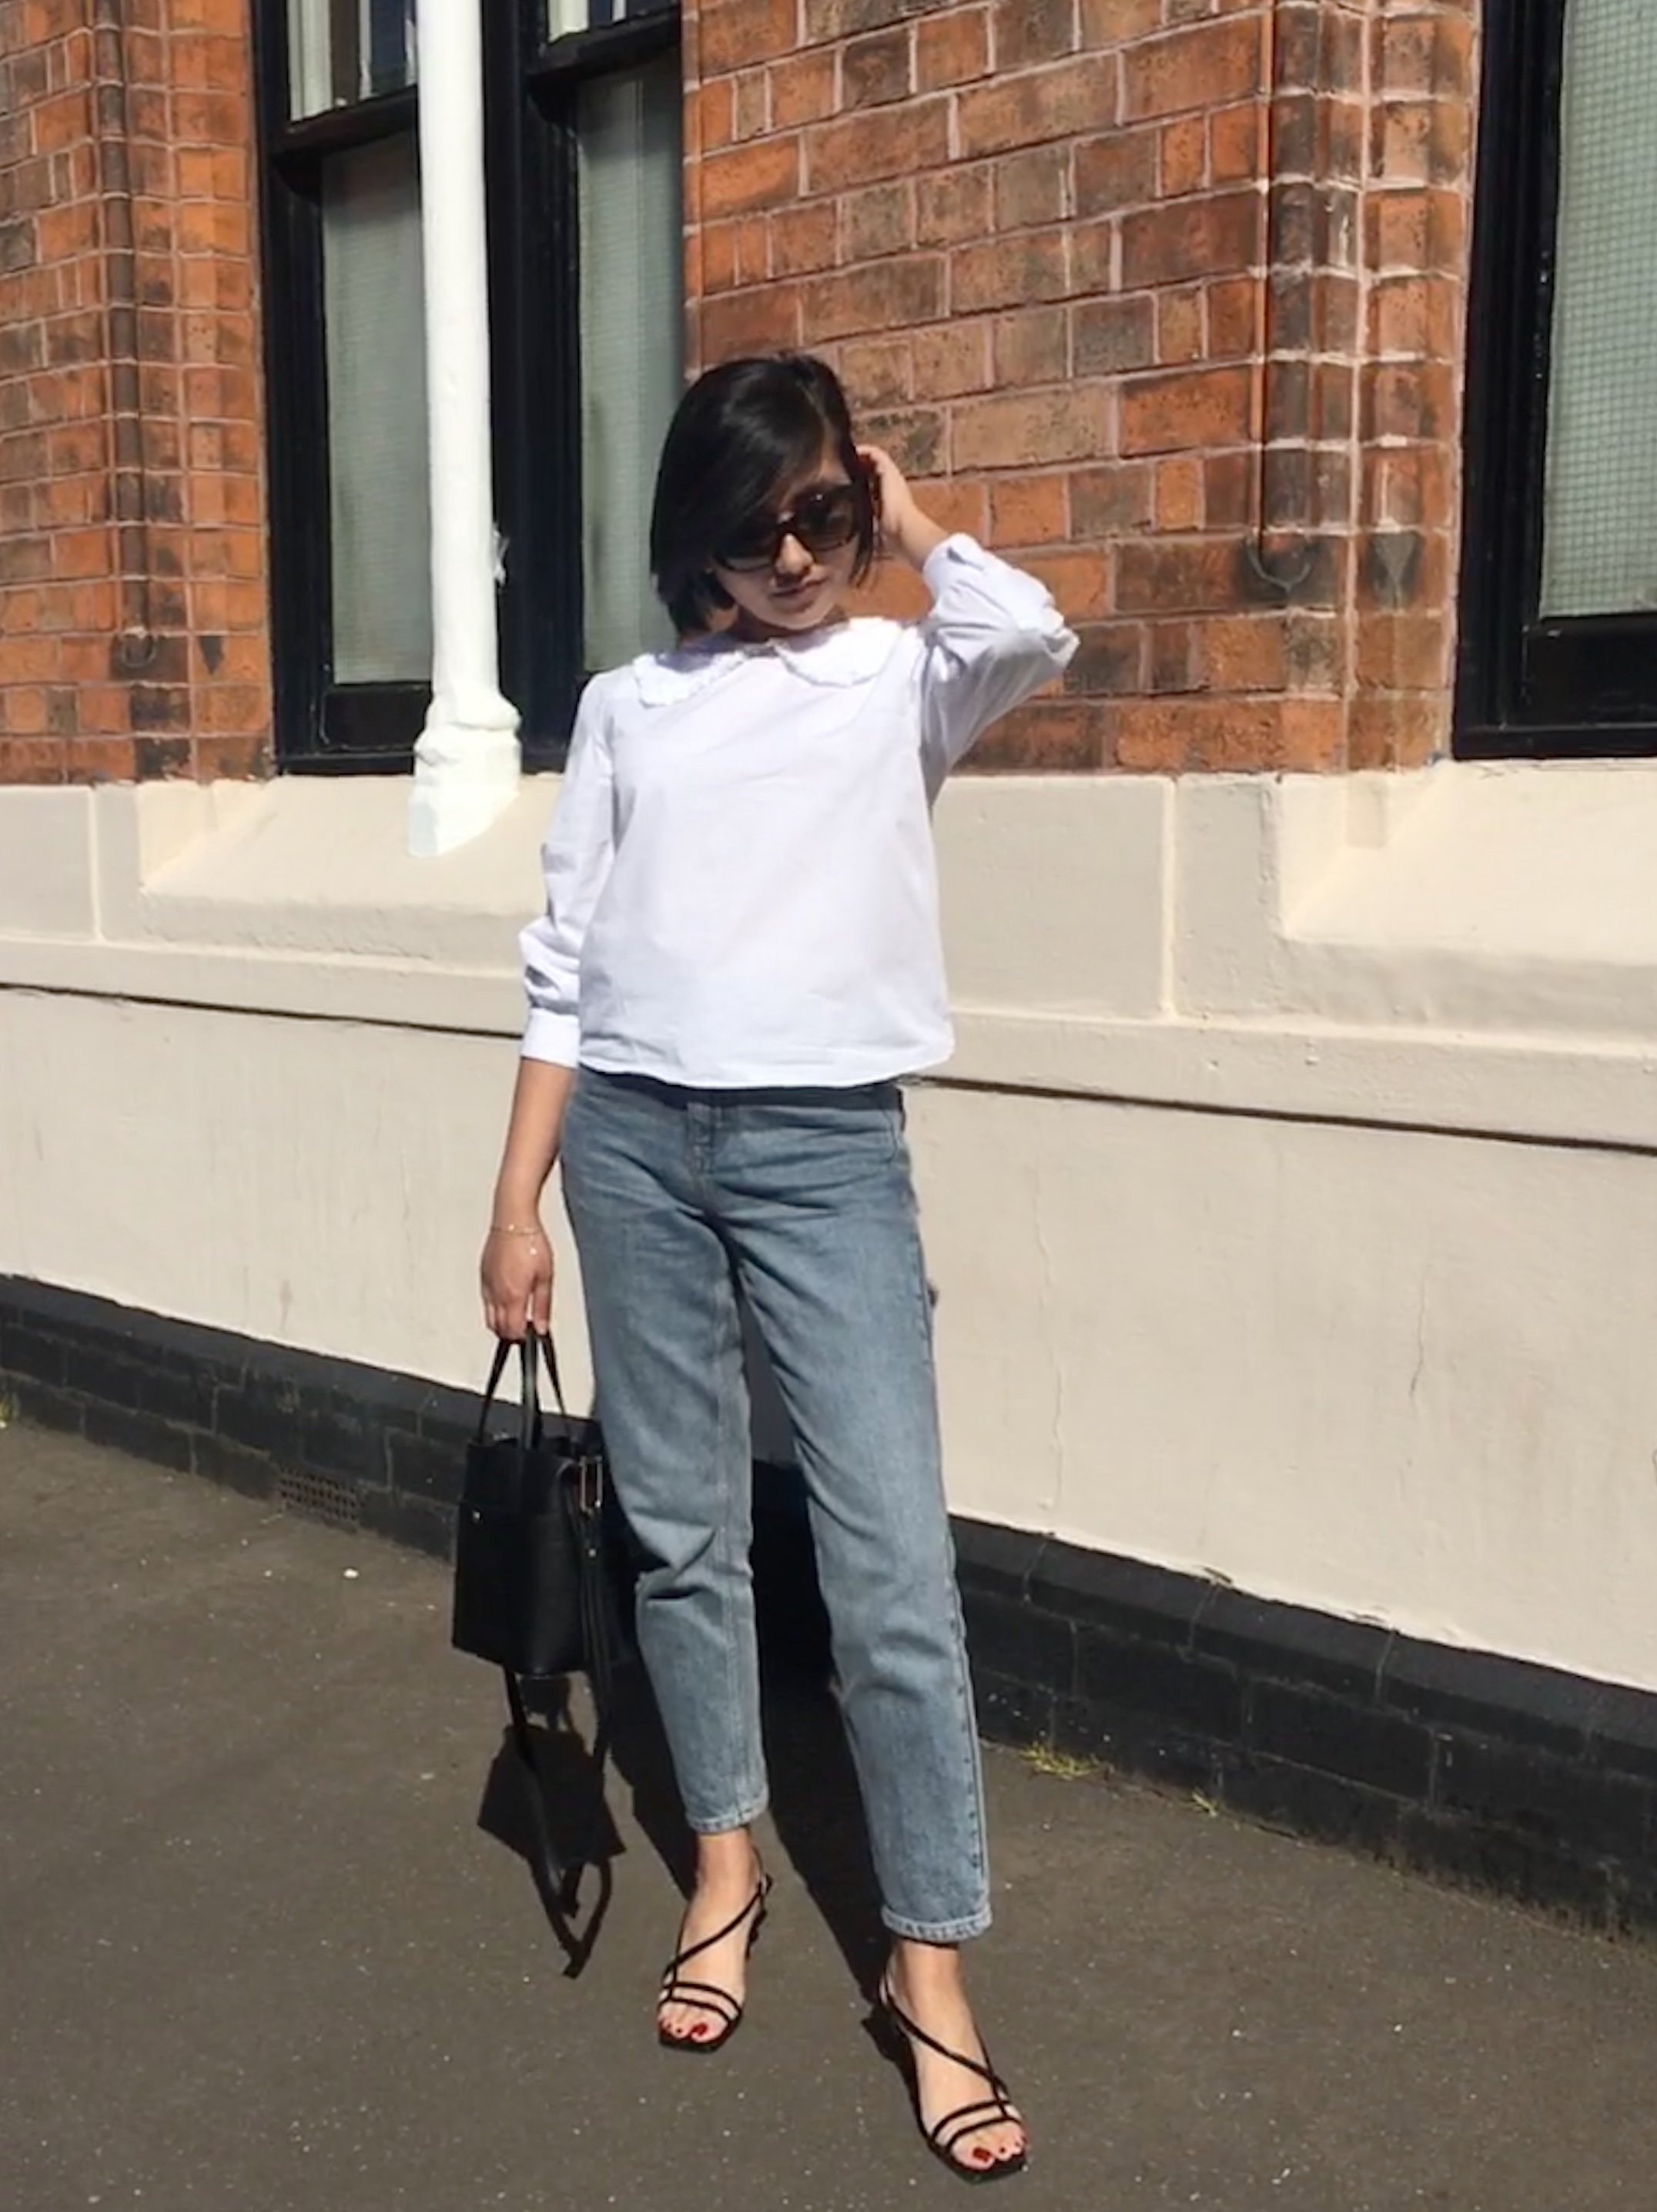 Zara Poplin Shirt (£29.99) ,  Topshop MOM Jeans (£40.00) ,  Topshop Strippy Heeled Sandals - only snakeskin version now available (£39.00)